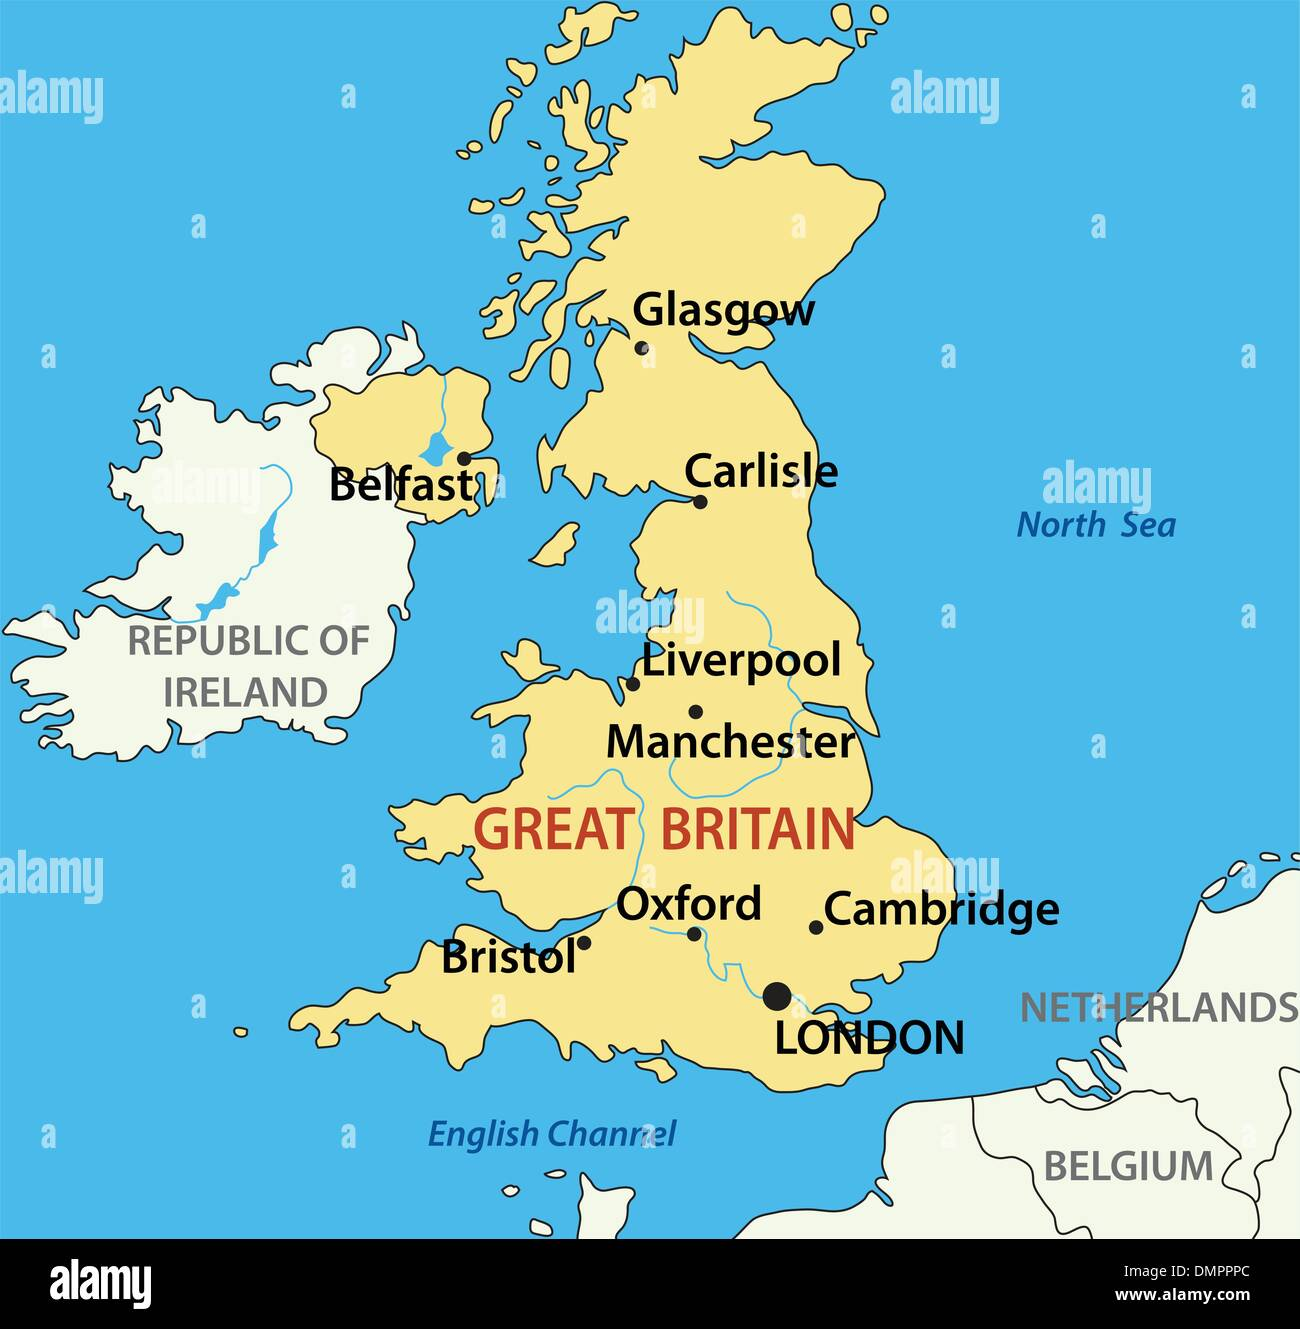 vector illustration - map of the United Kingdom of Great Britain - Stock Vector